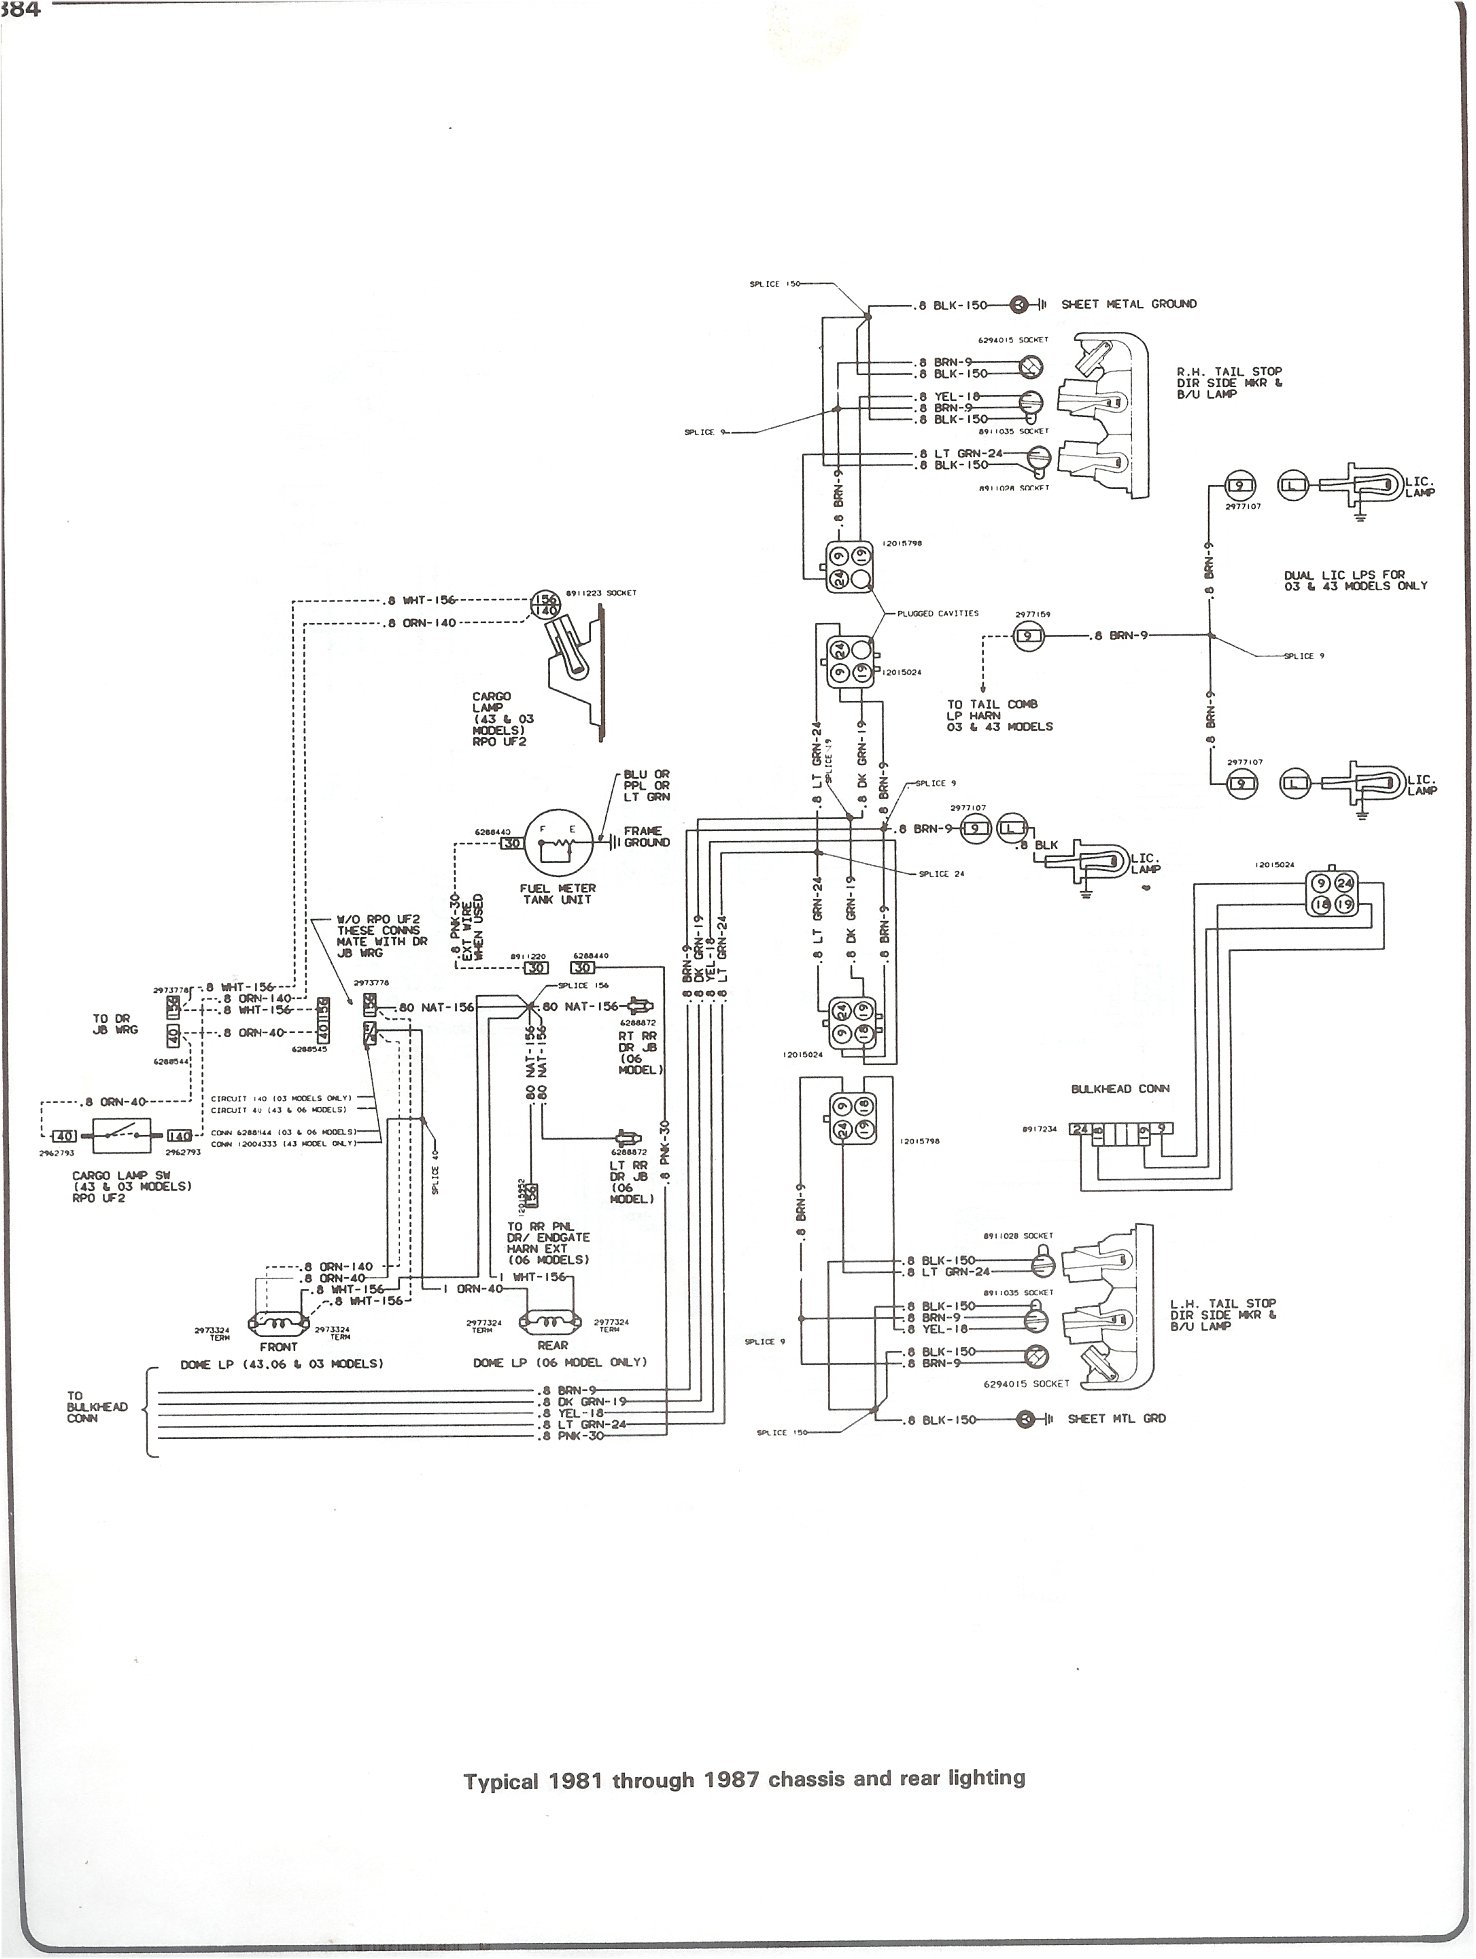 86 suburban wiring diagram detailed schematics diagram rh lelandlutheran  com 1990 GMC Sierra Wiring Diagram 1990